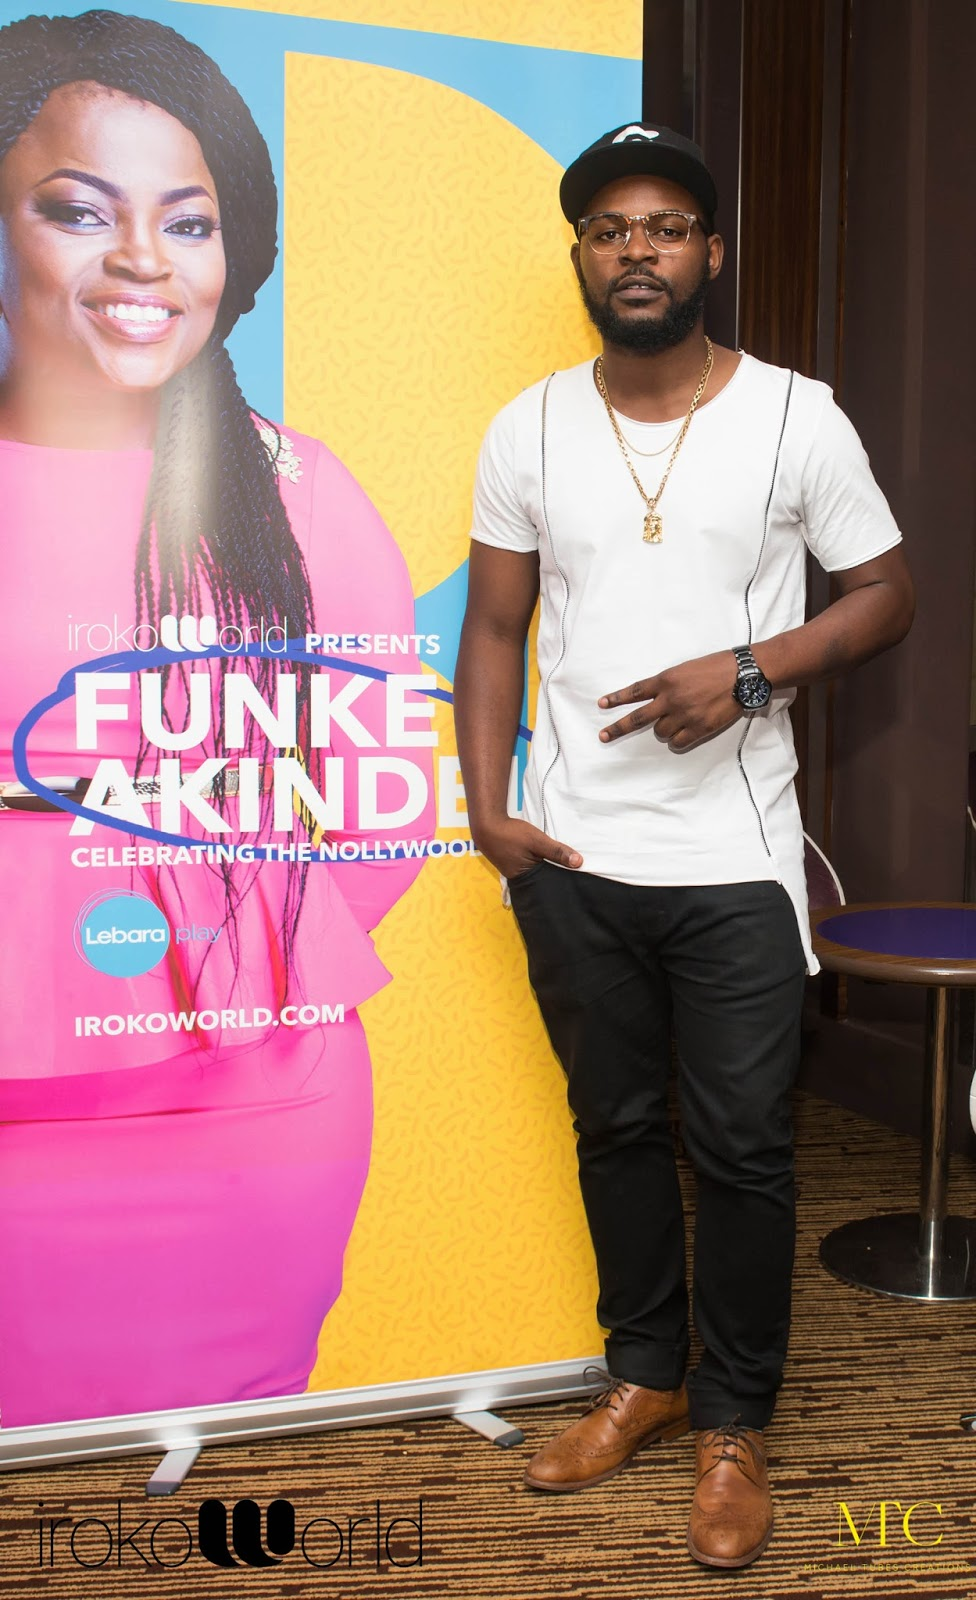 Falz The Bad Guy at An Evening with Funke Akindele